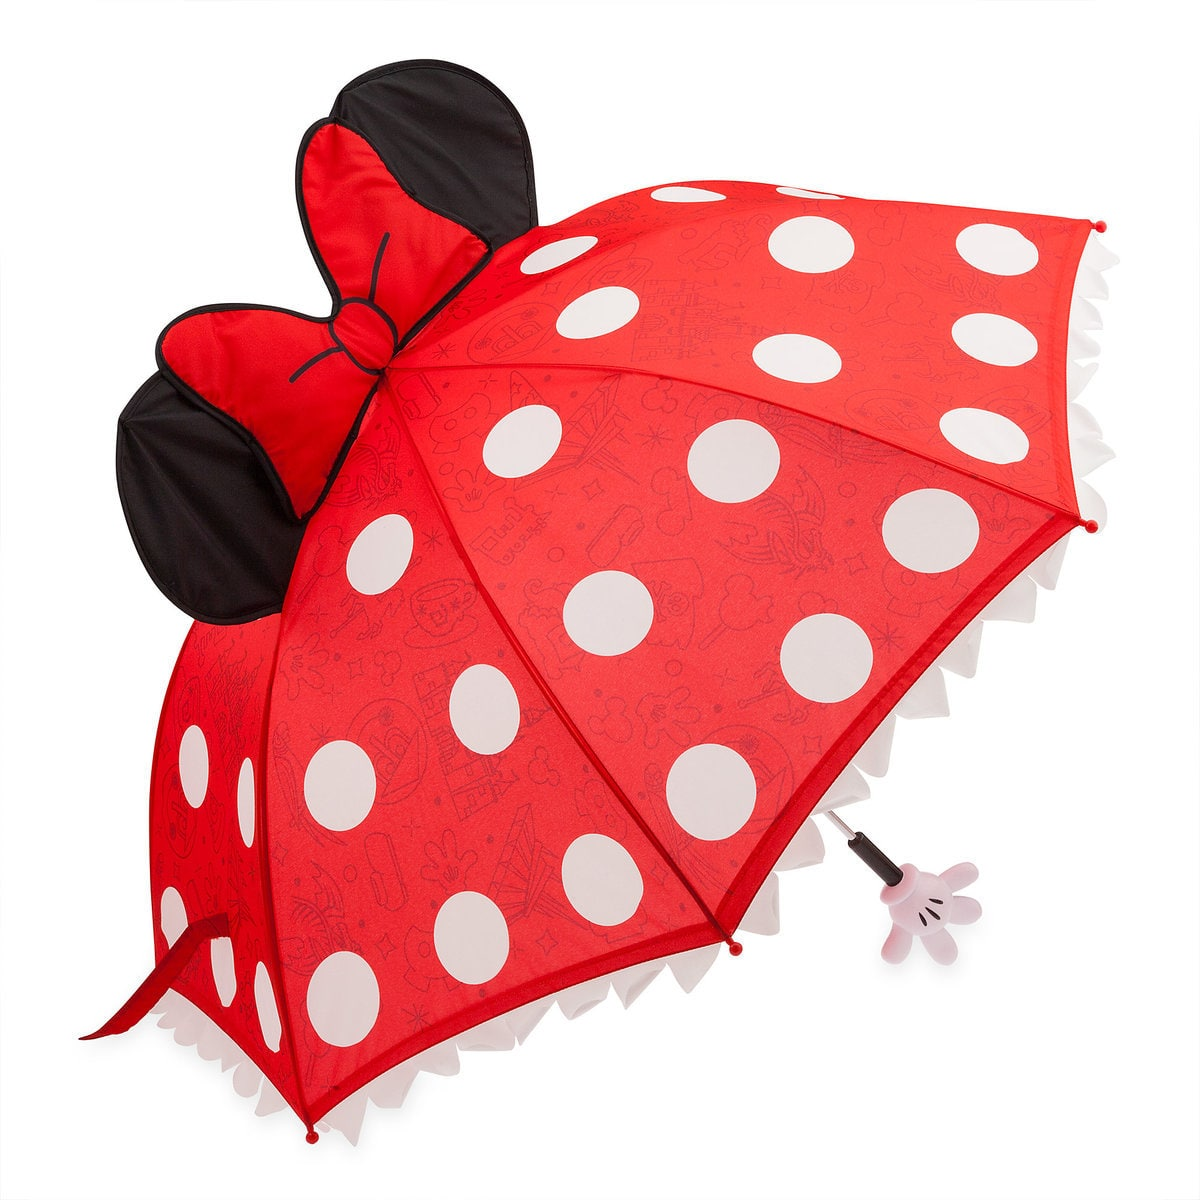 Red and white polka dot Minnie Mouse umbrella for kids | Top 25 Disney Gift Ideas for Toddlers featured by top US Disney blogger, Marcie and the Mouse